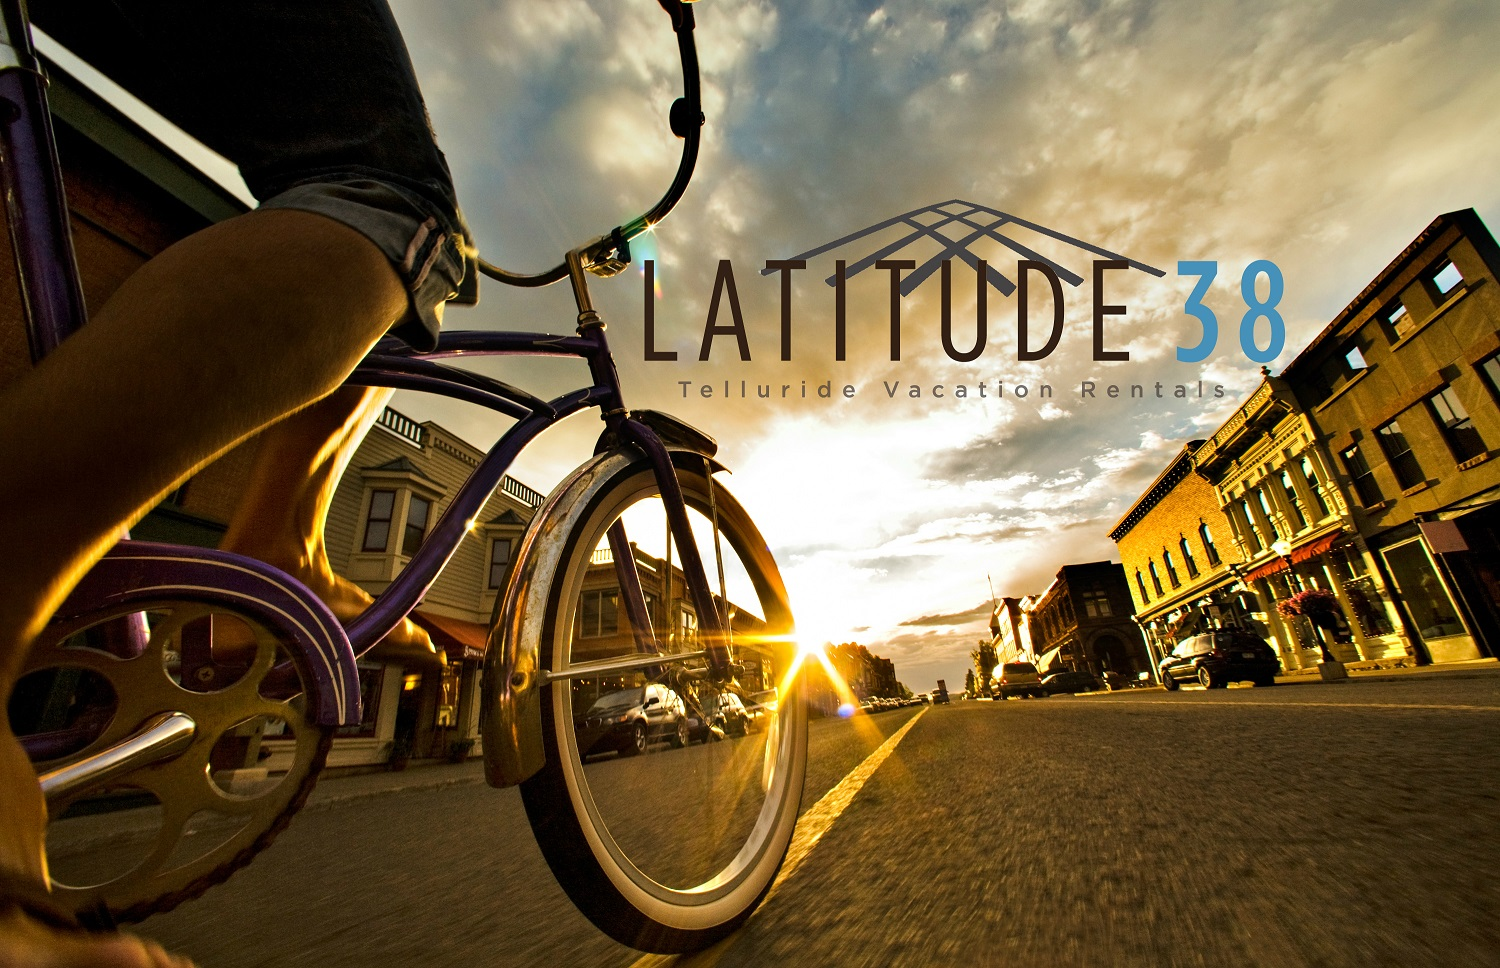 Latitude 38 Vacation Rentals